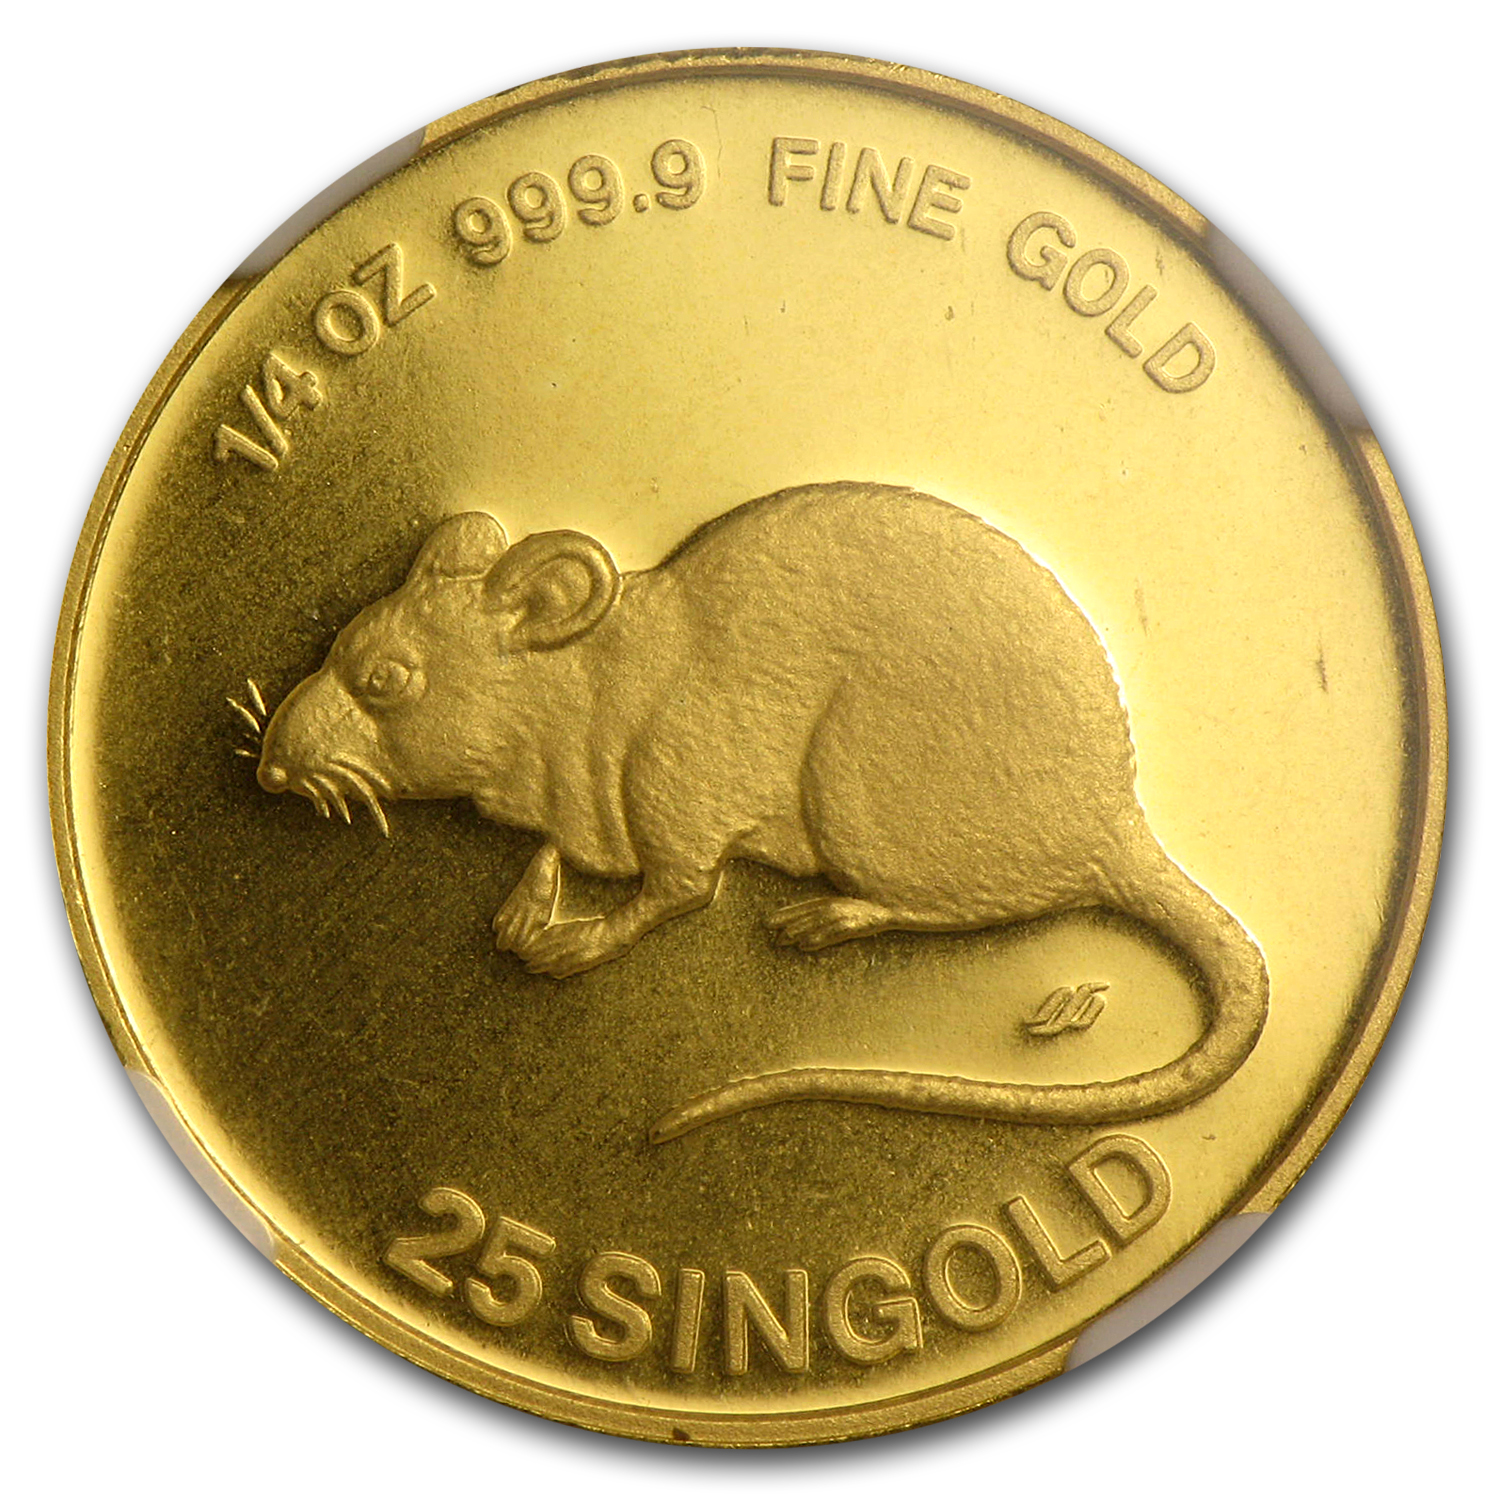 Singapore 1984 - Rat (25 Singold) Gold Coin NGC MS-67